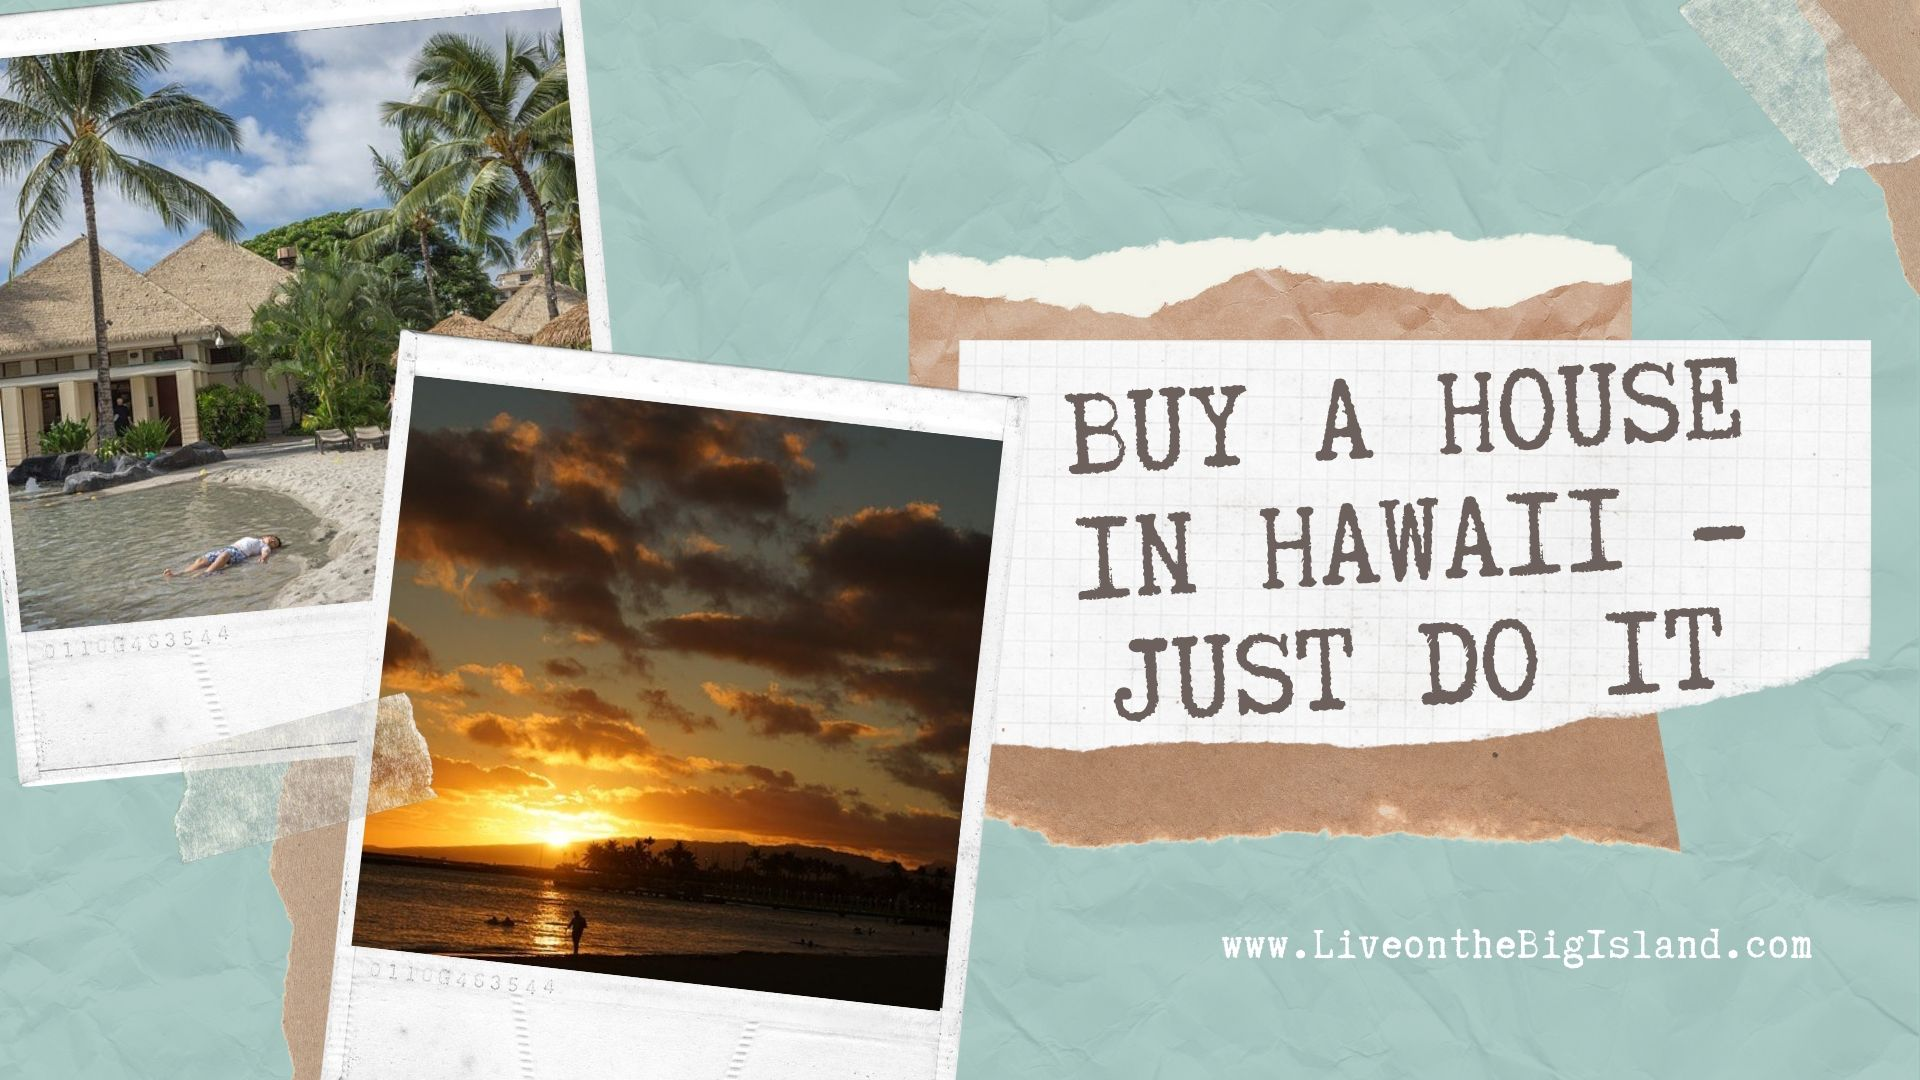 Buy a House in Hawaii - Just Do It